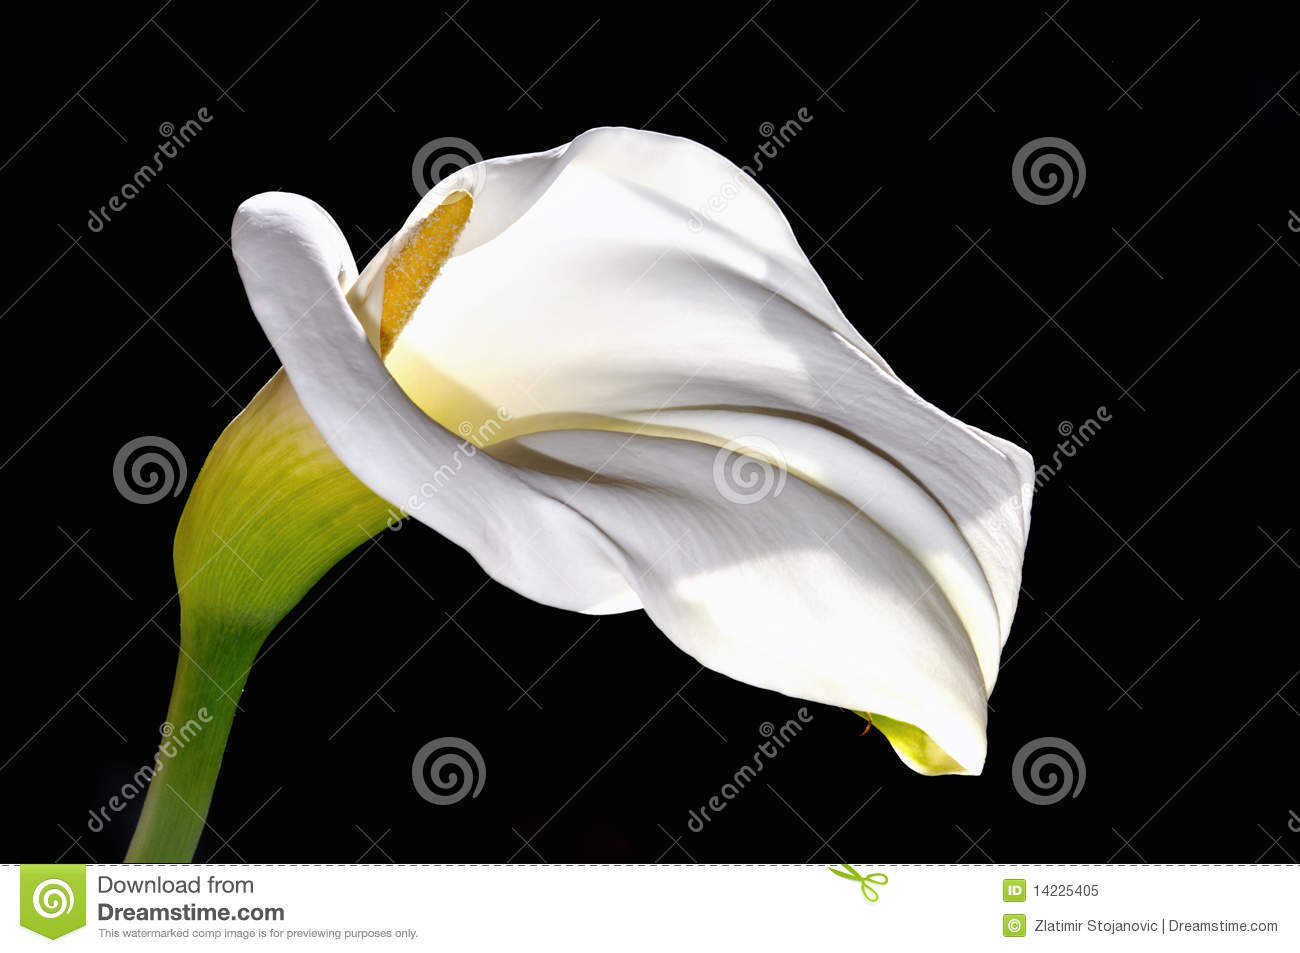 White calla lily flower stock illustration illustration of beauty white calla lily flower izmirmasajfo